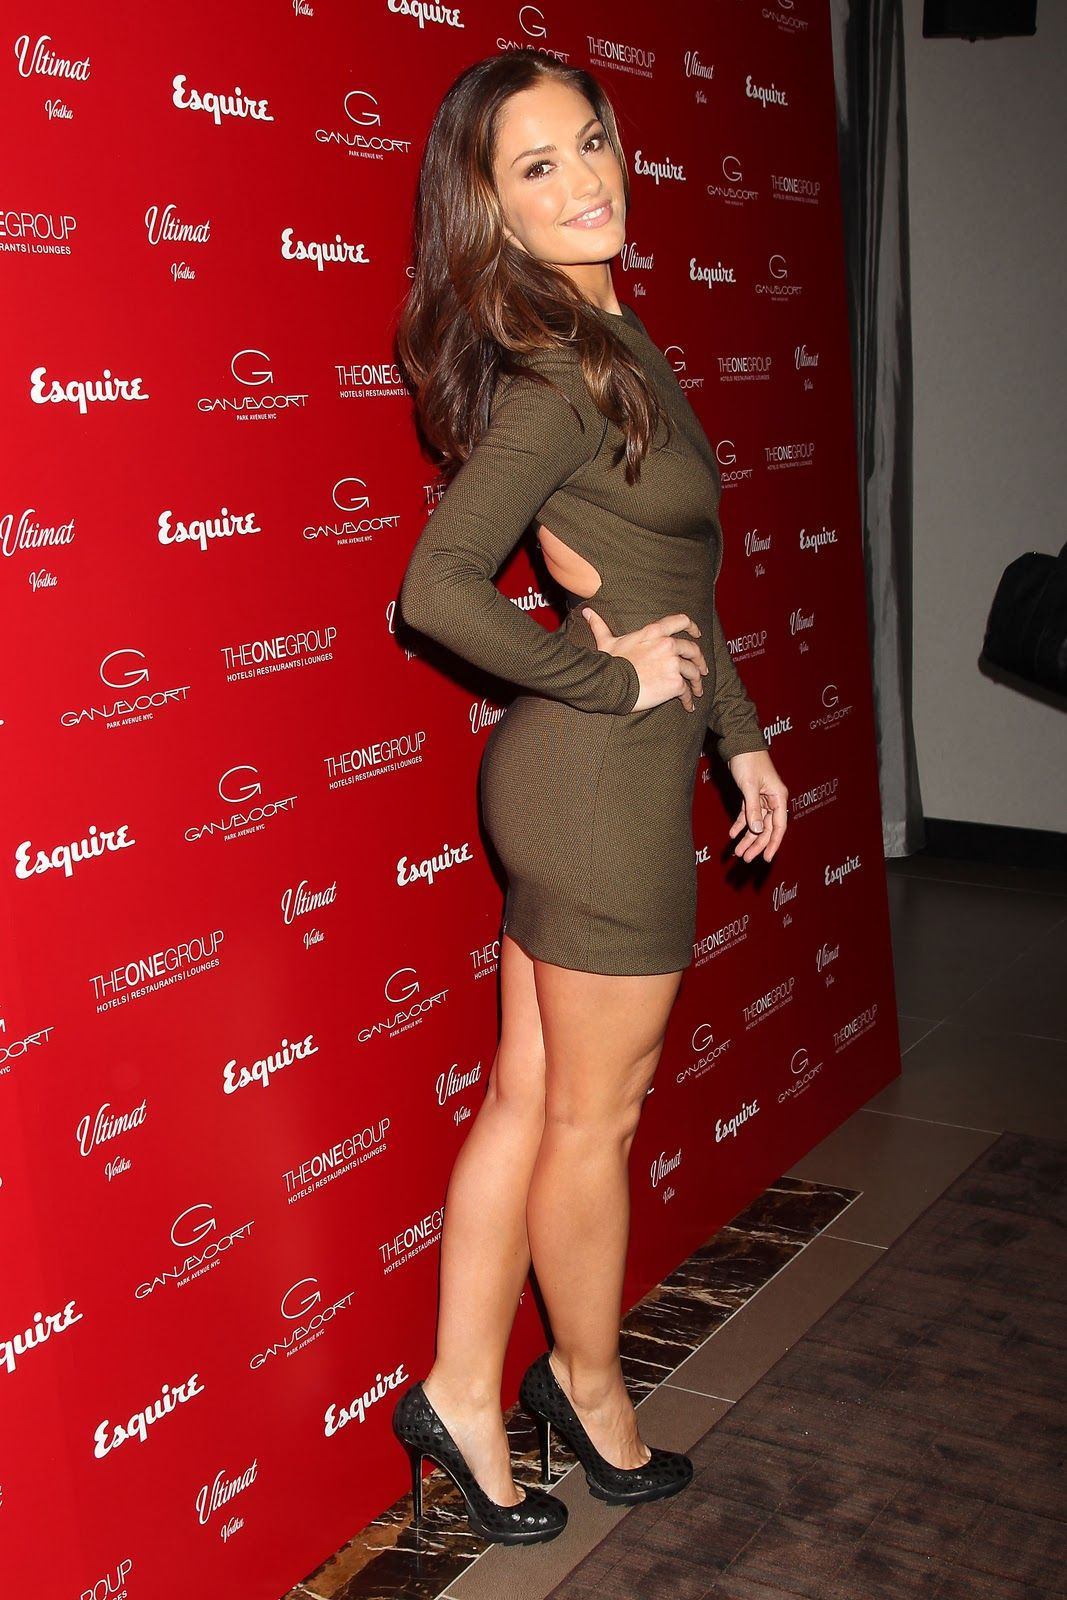 minka kelly, man those legs go up and make a complete ass of